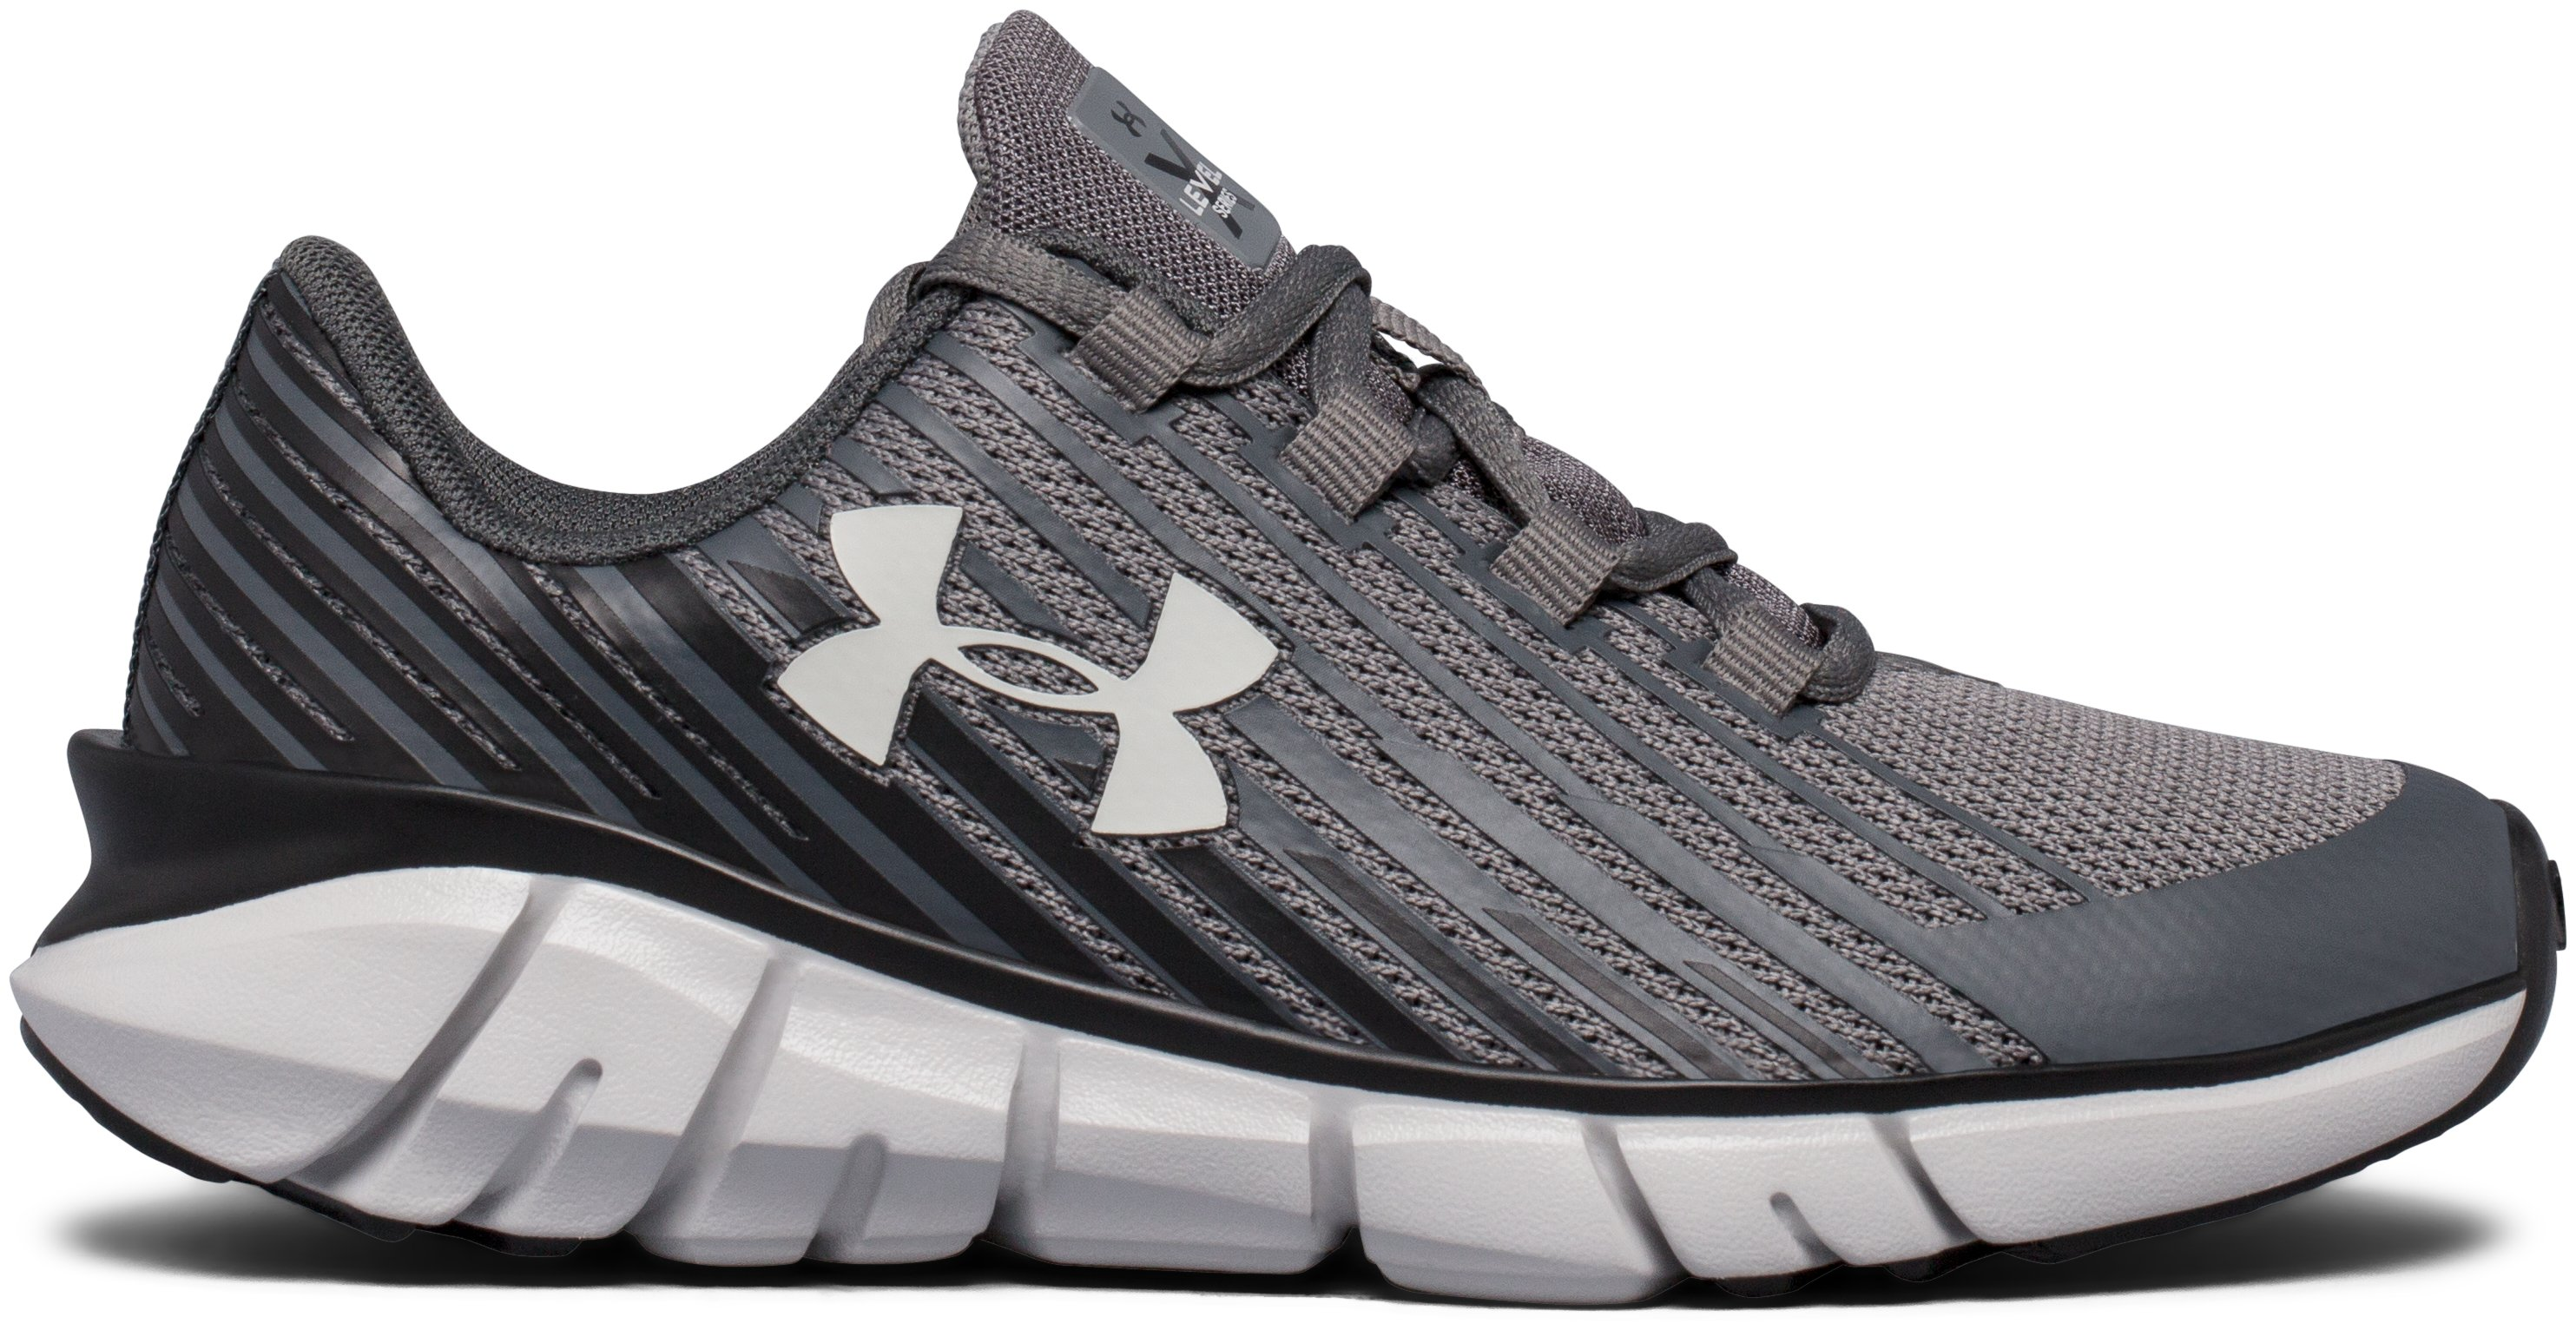 Boys' Pre-School UA X Level Scramjet Remix Running Shoes, Graphite